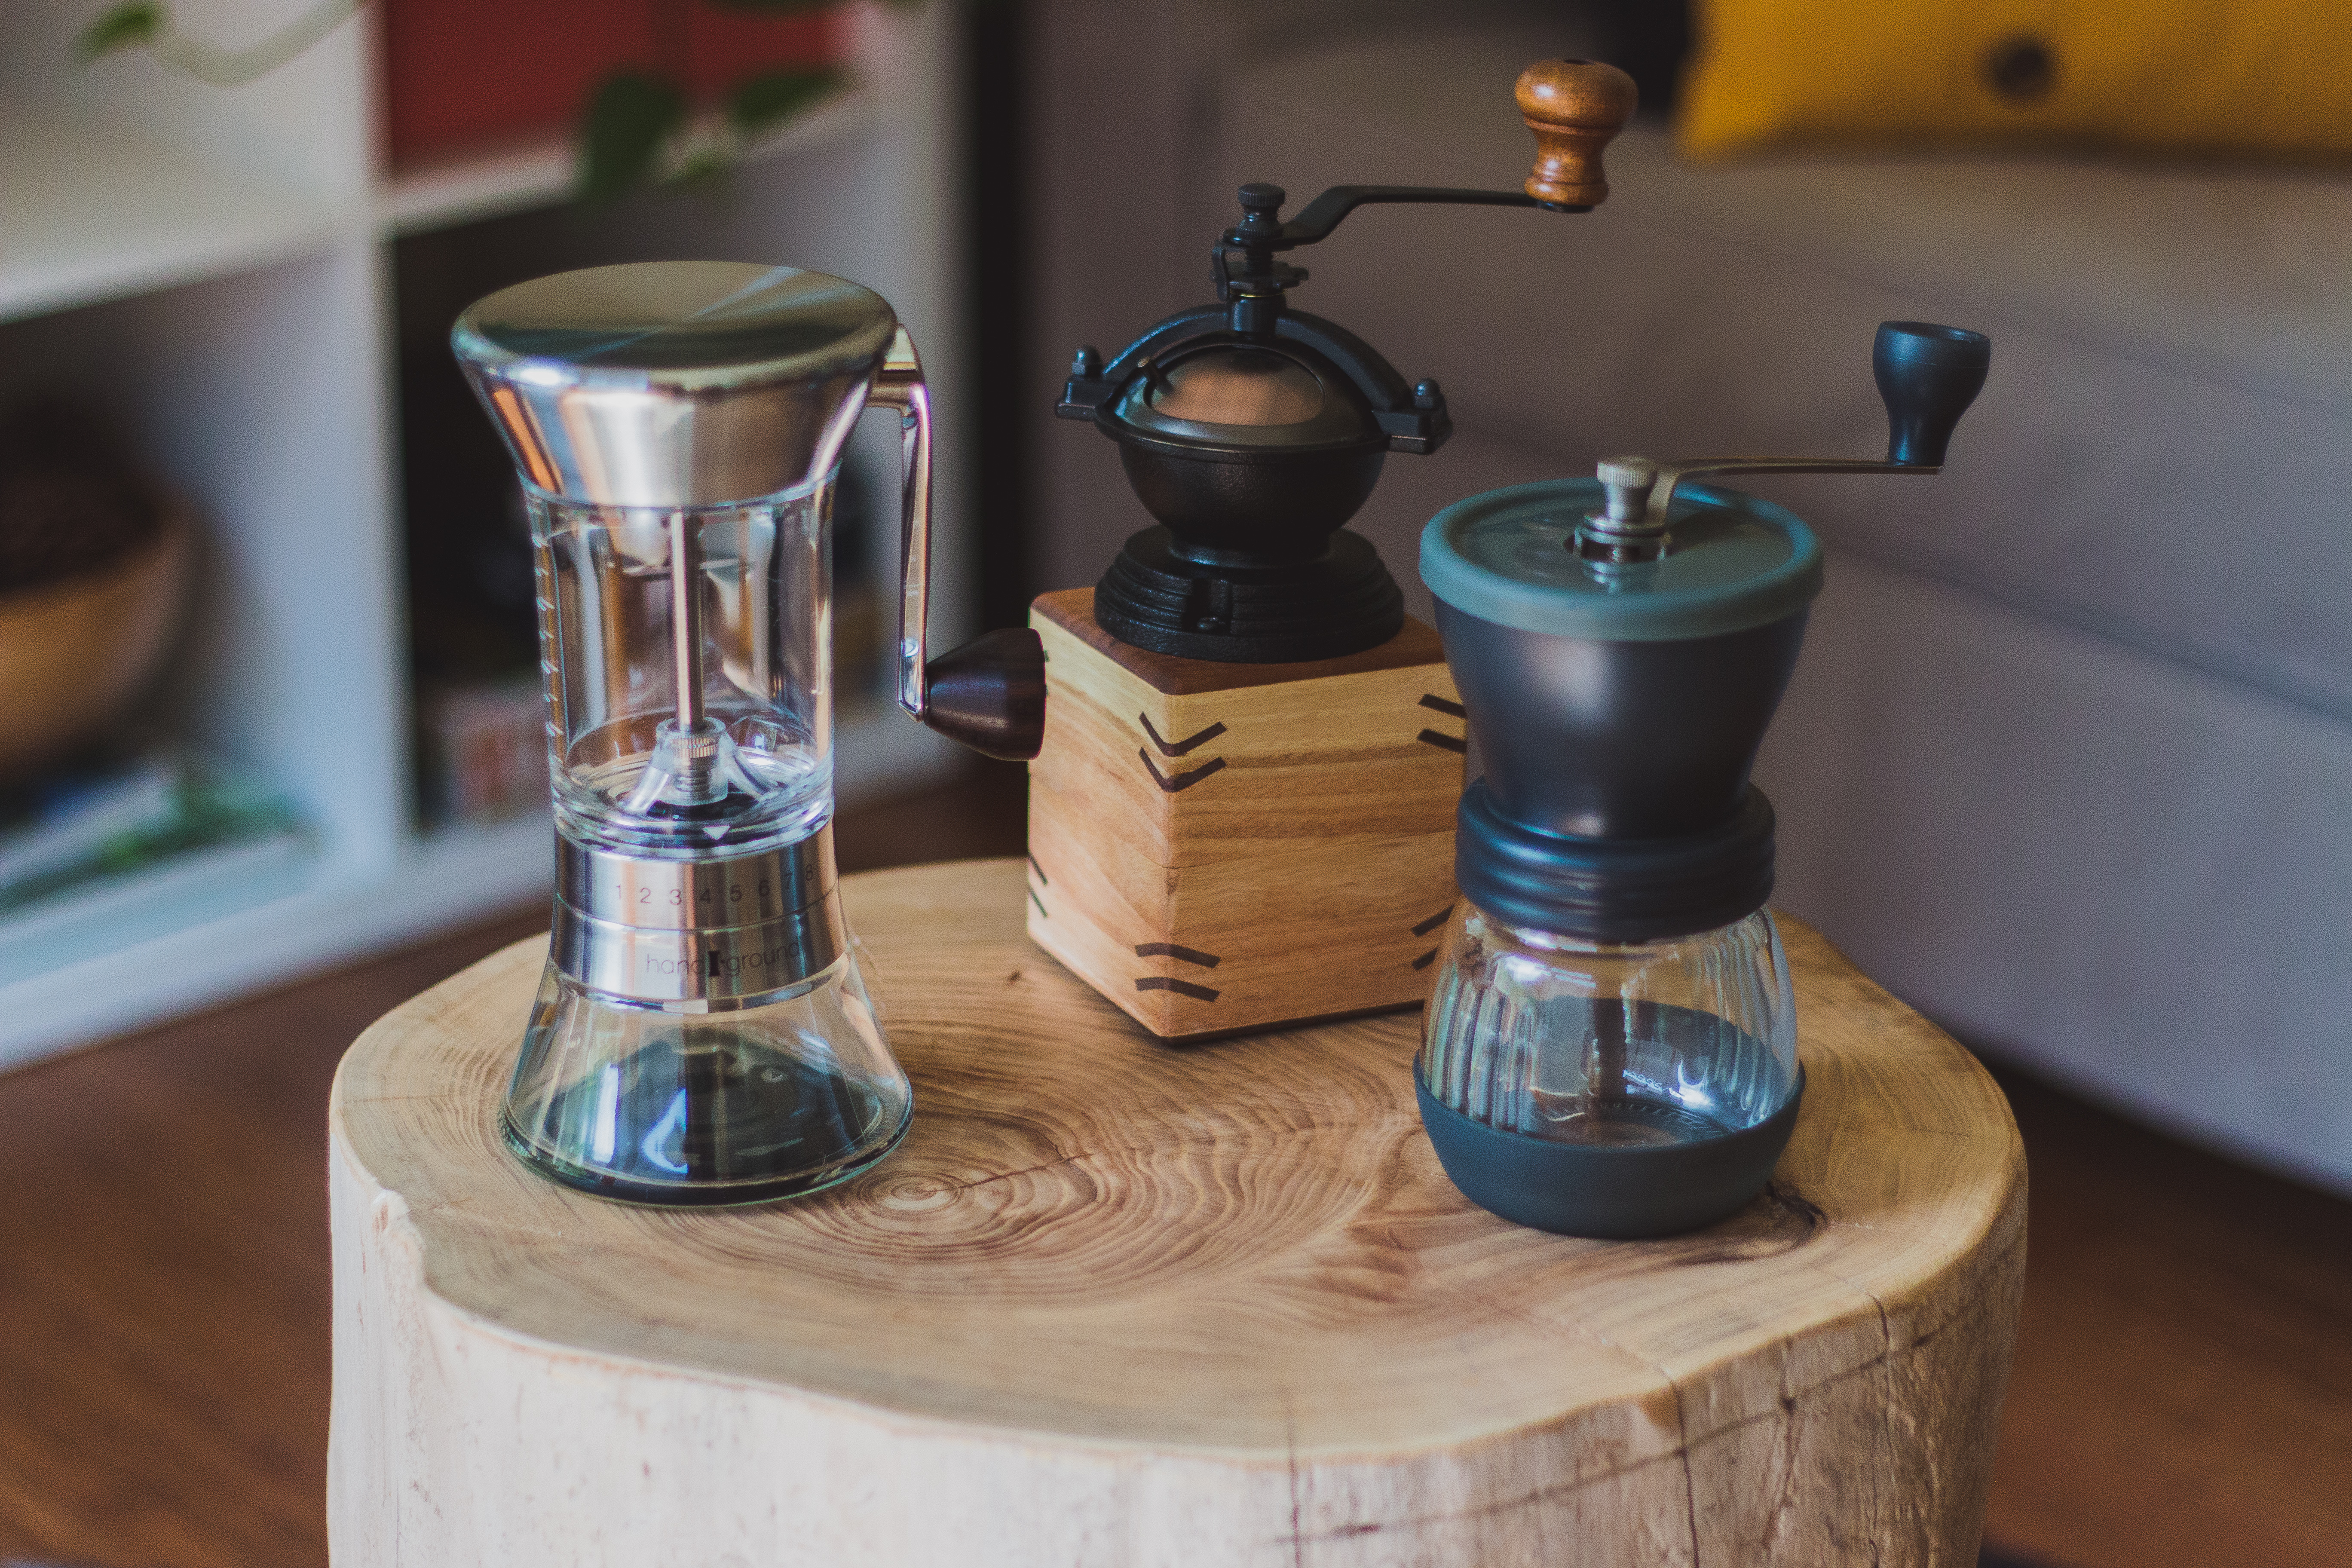 The 2019 Complete Guide And Reviews For Coffee Grinders